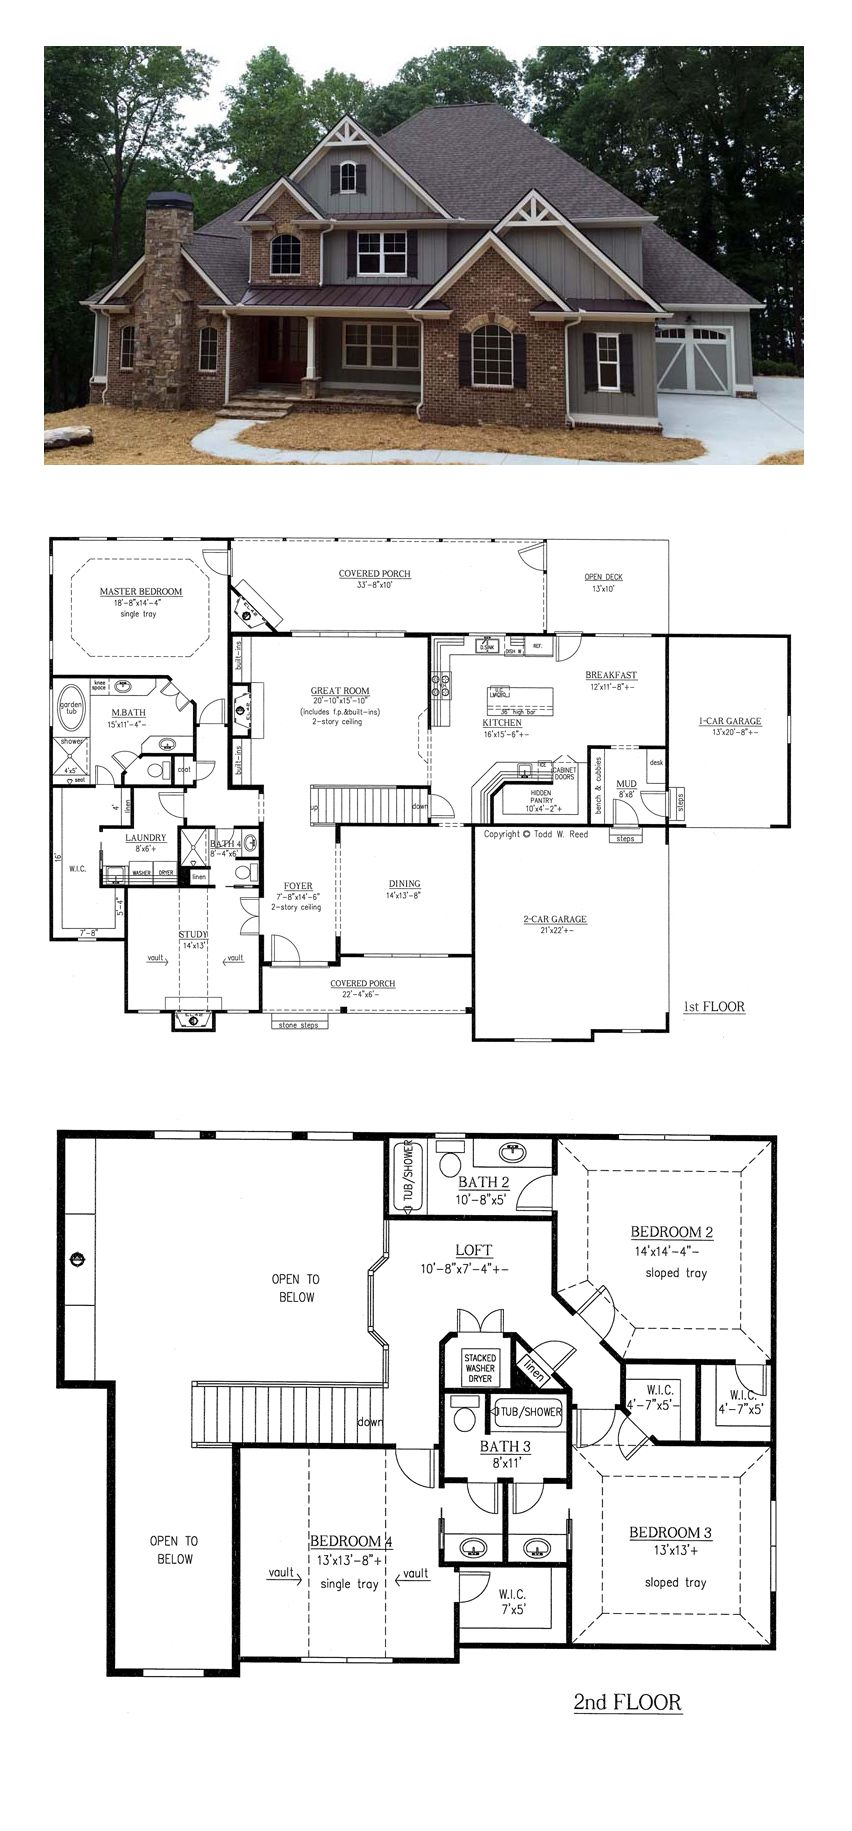 French country house plan 50263 total living area 3290 for 4 bedroom country house plans